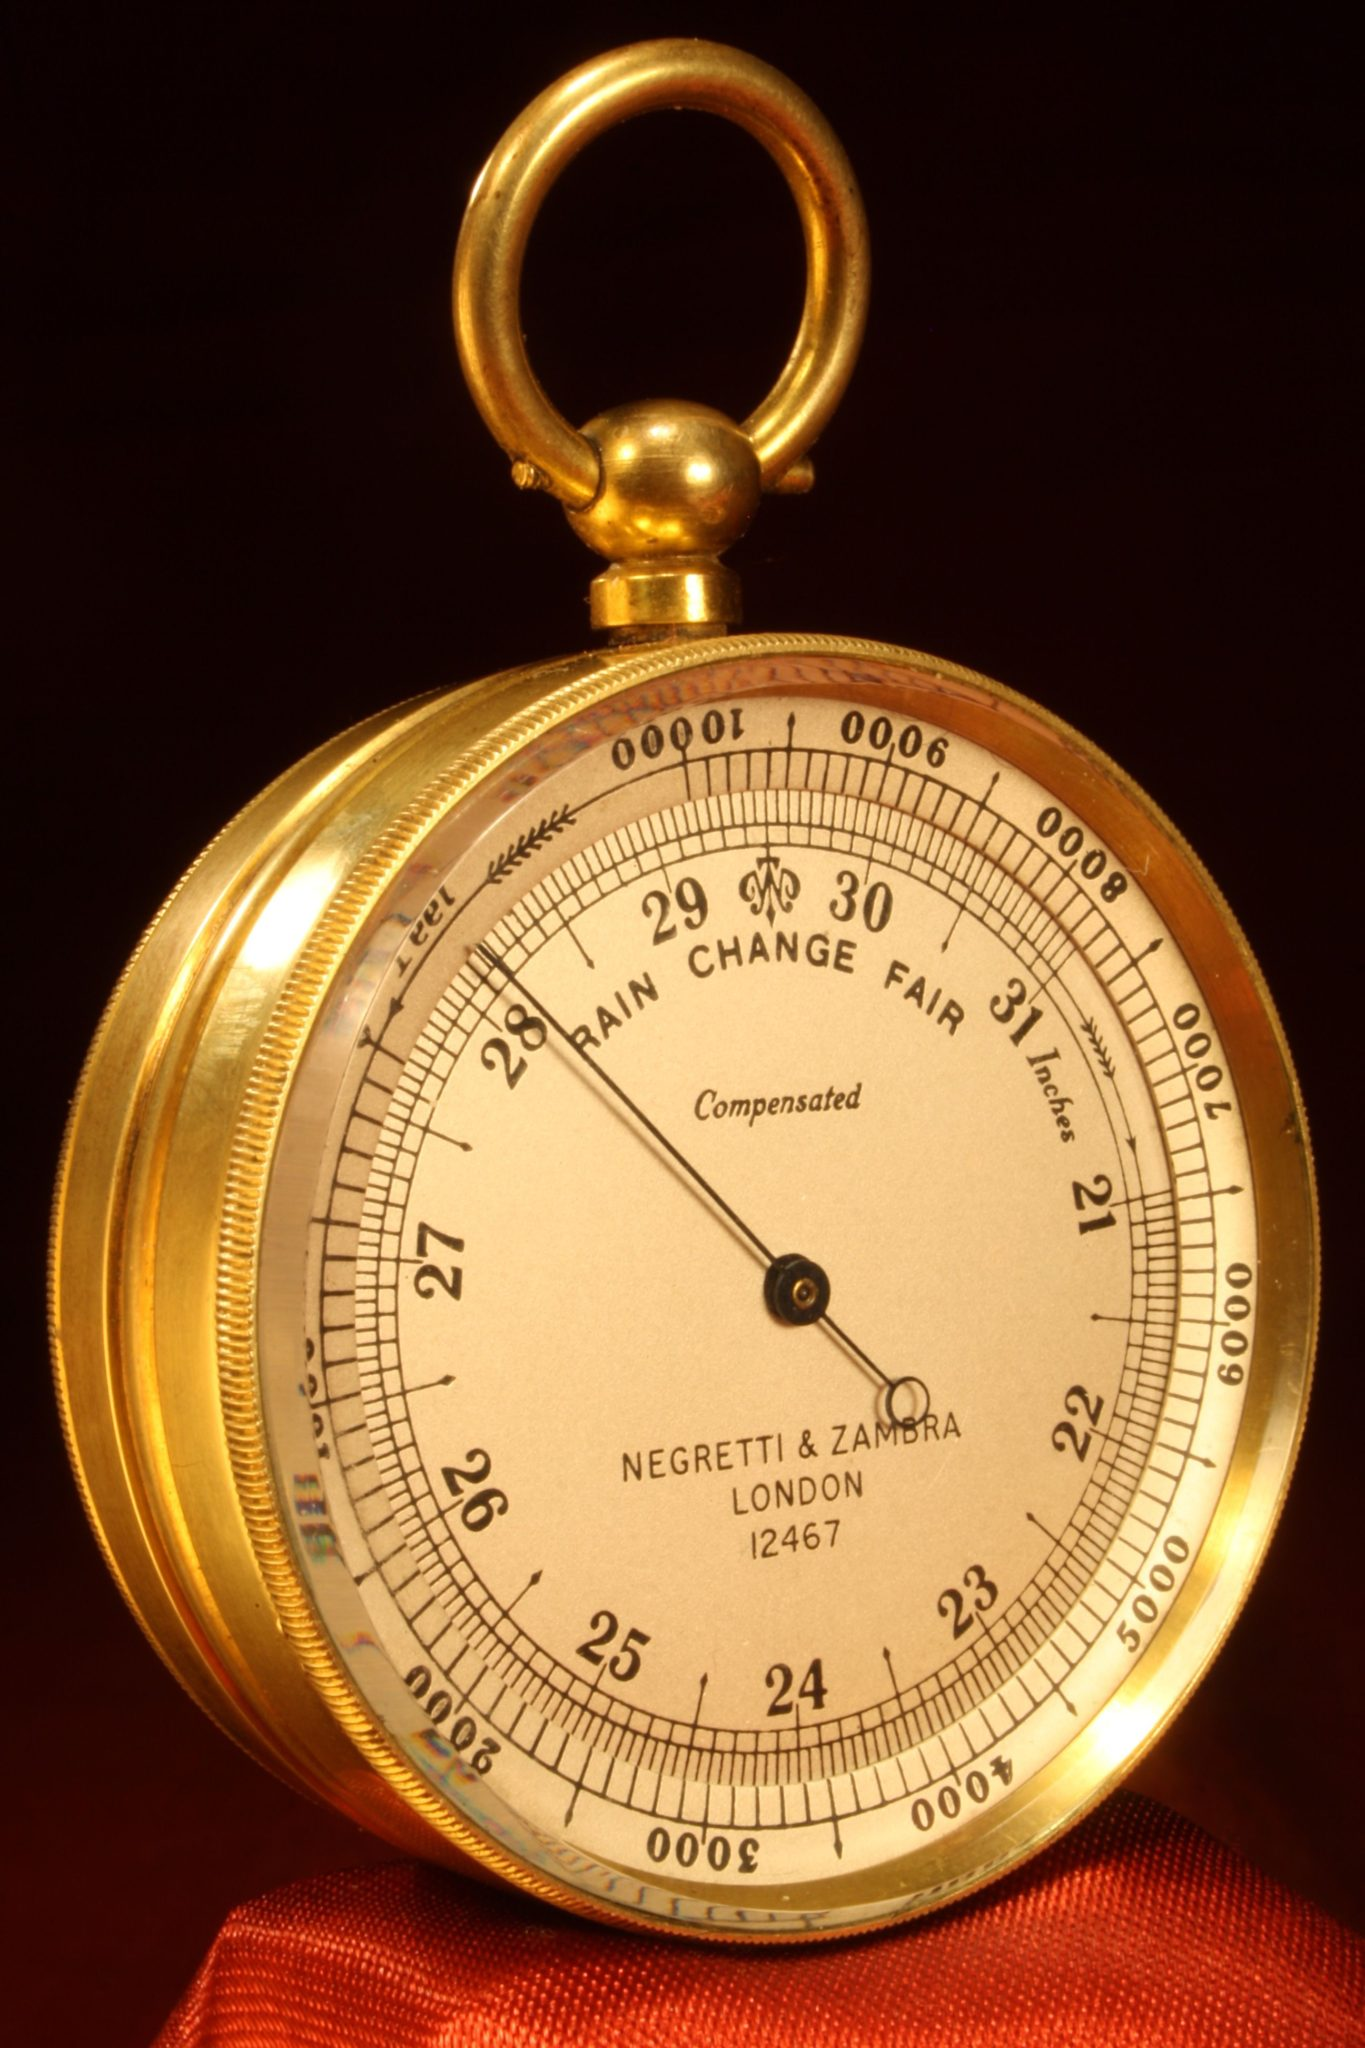 Image of Negretti & Zambra Pocket Barometer Compendium No 12467 c1890